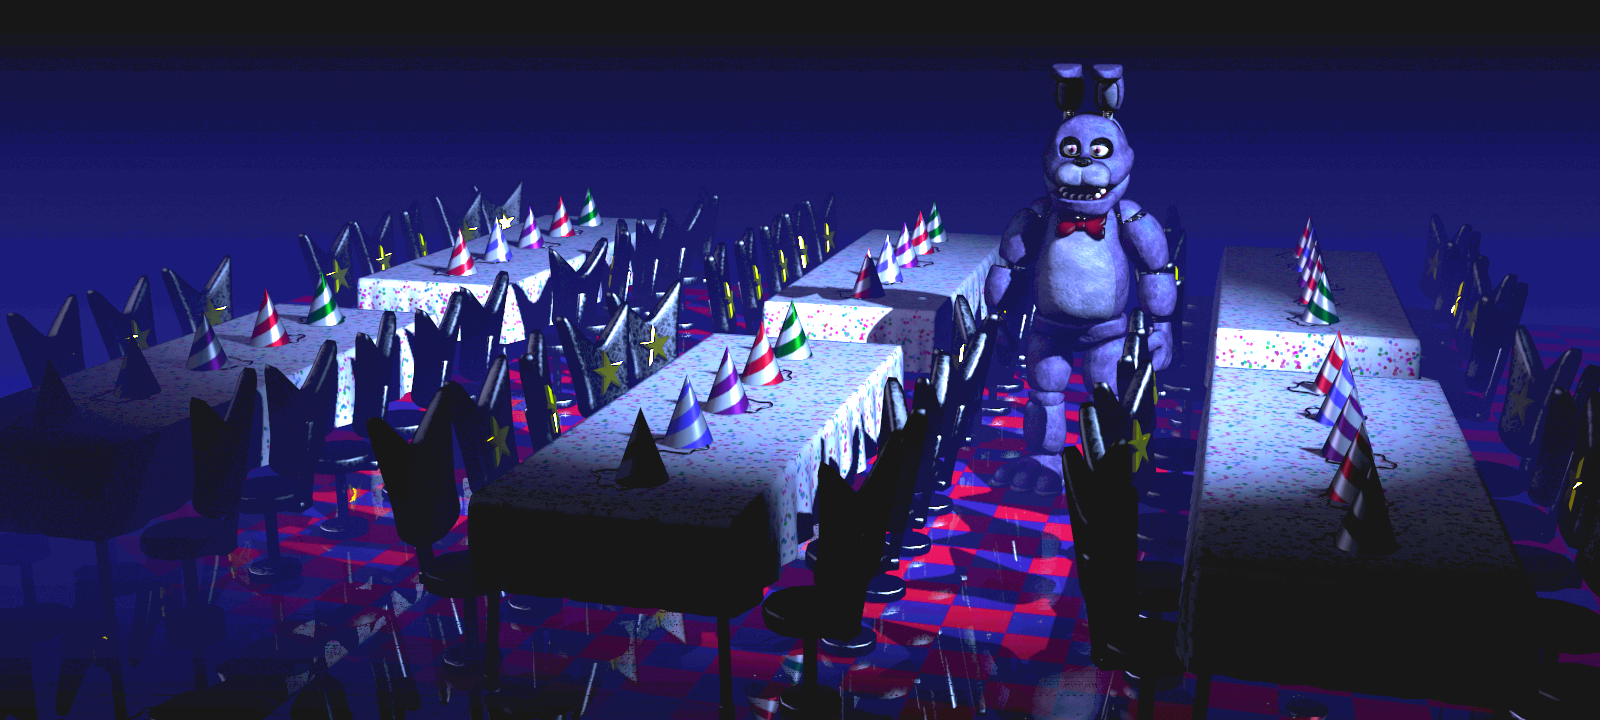 Bonnie is coming five nights at freddy s photo 37637670 fanpop